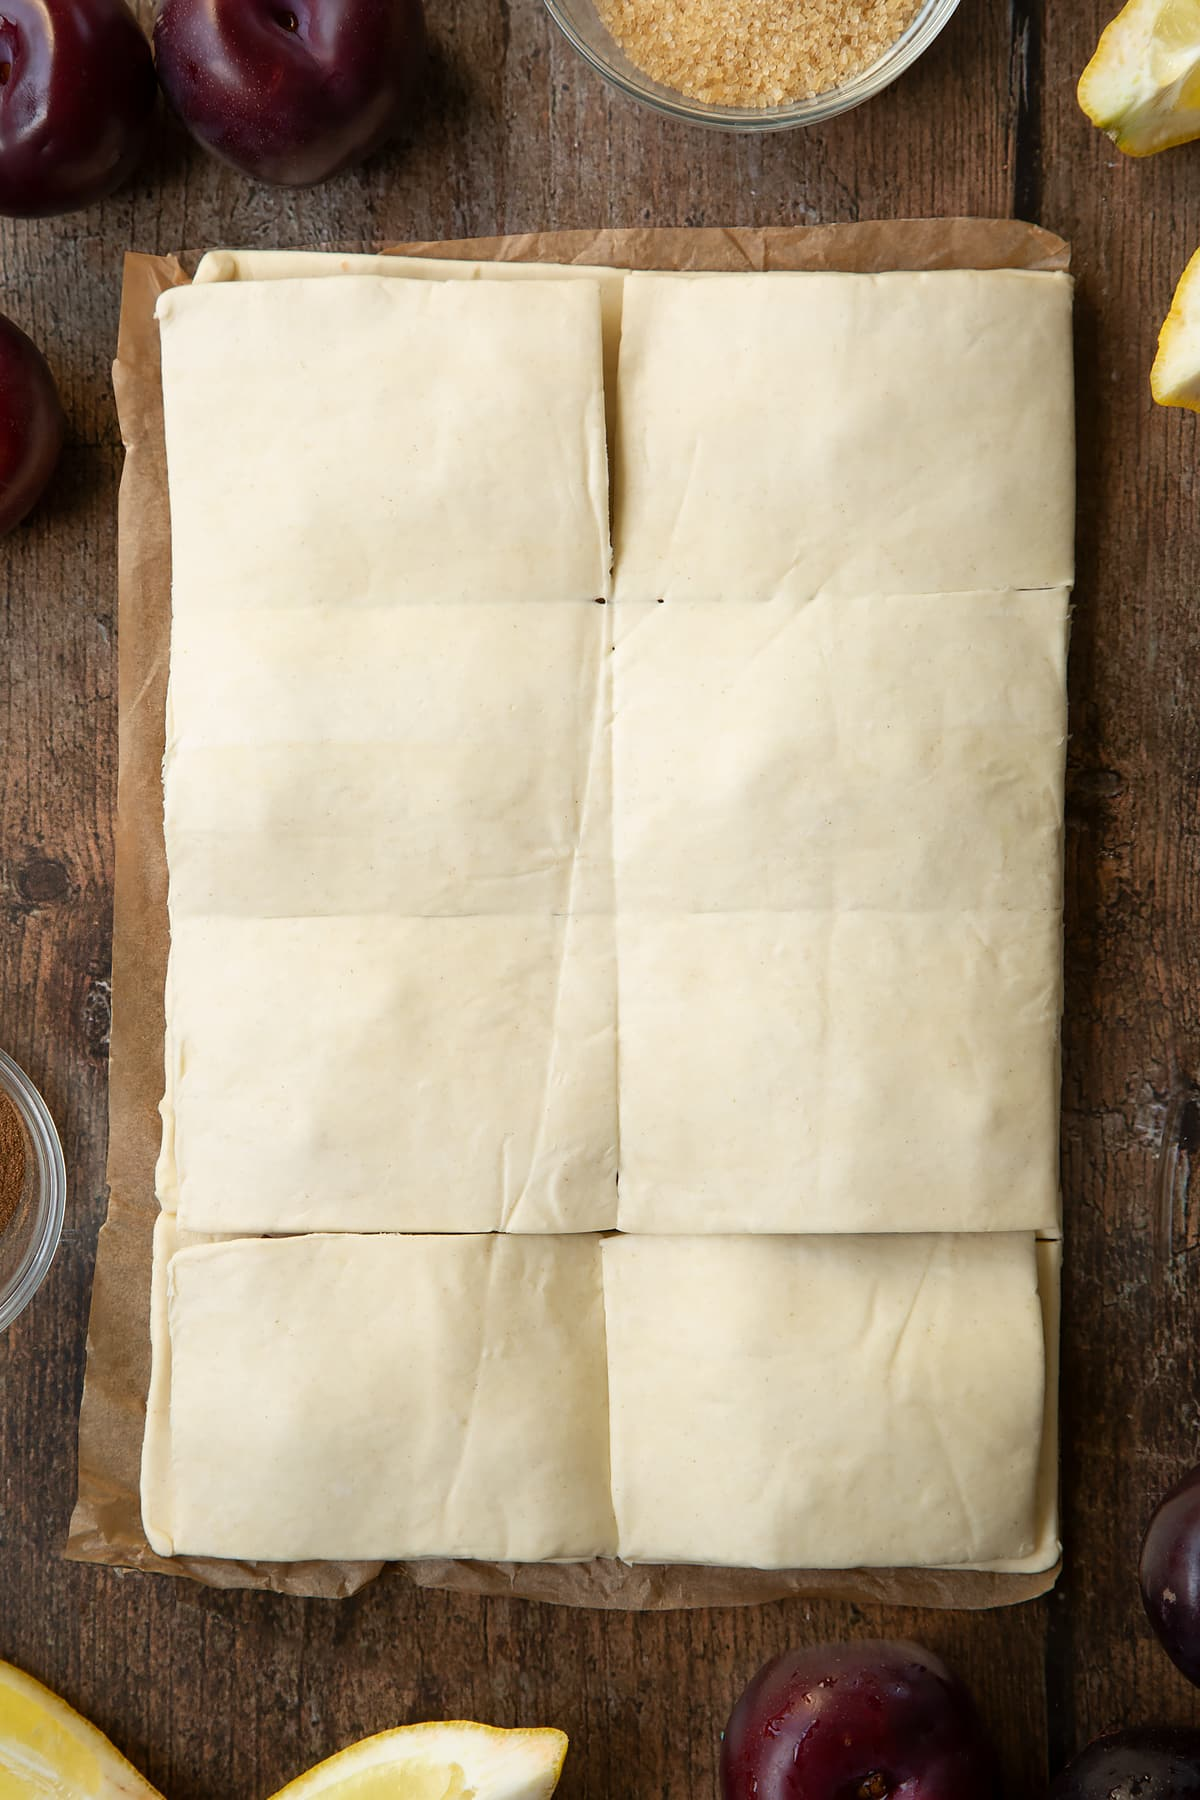 A puff pastry sheet topped with chopped plums and another sheet laying on top of it. Ingredients to make a plum pastry recipe surround the pastry.